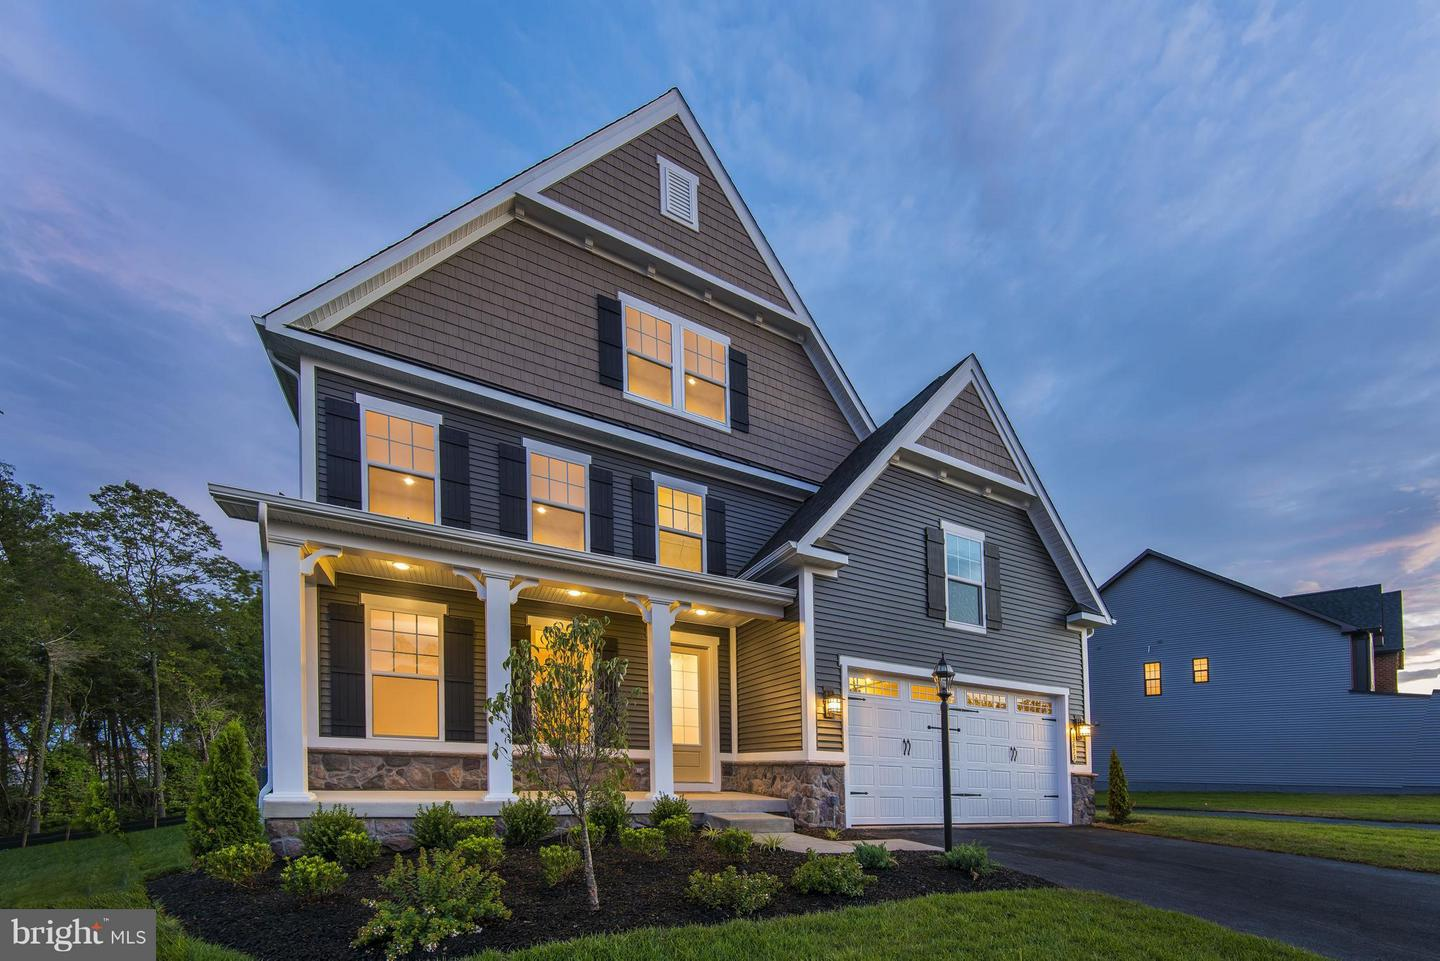 2609 ORCHARD ORIOLE WAY, ODENTON, Maryland